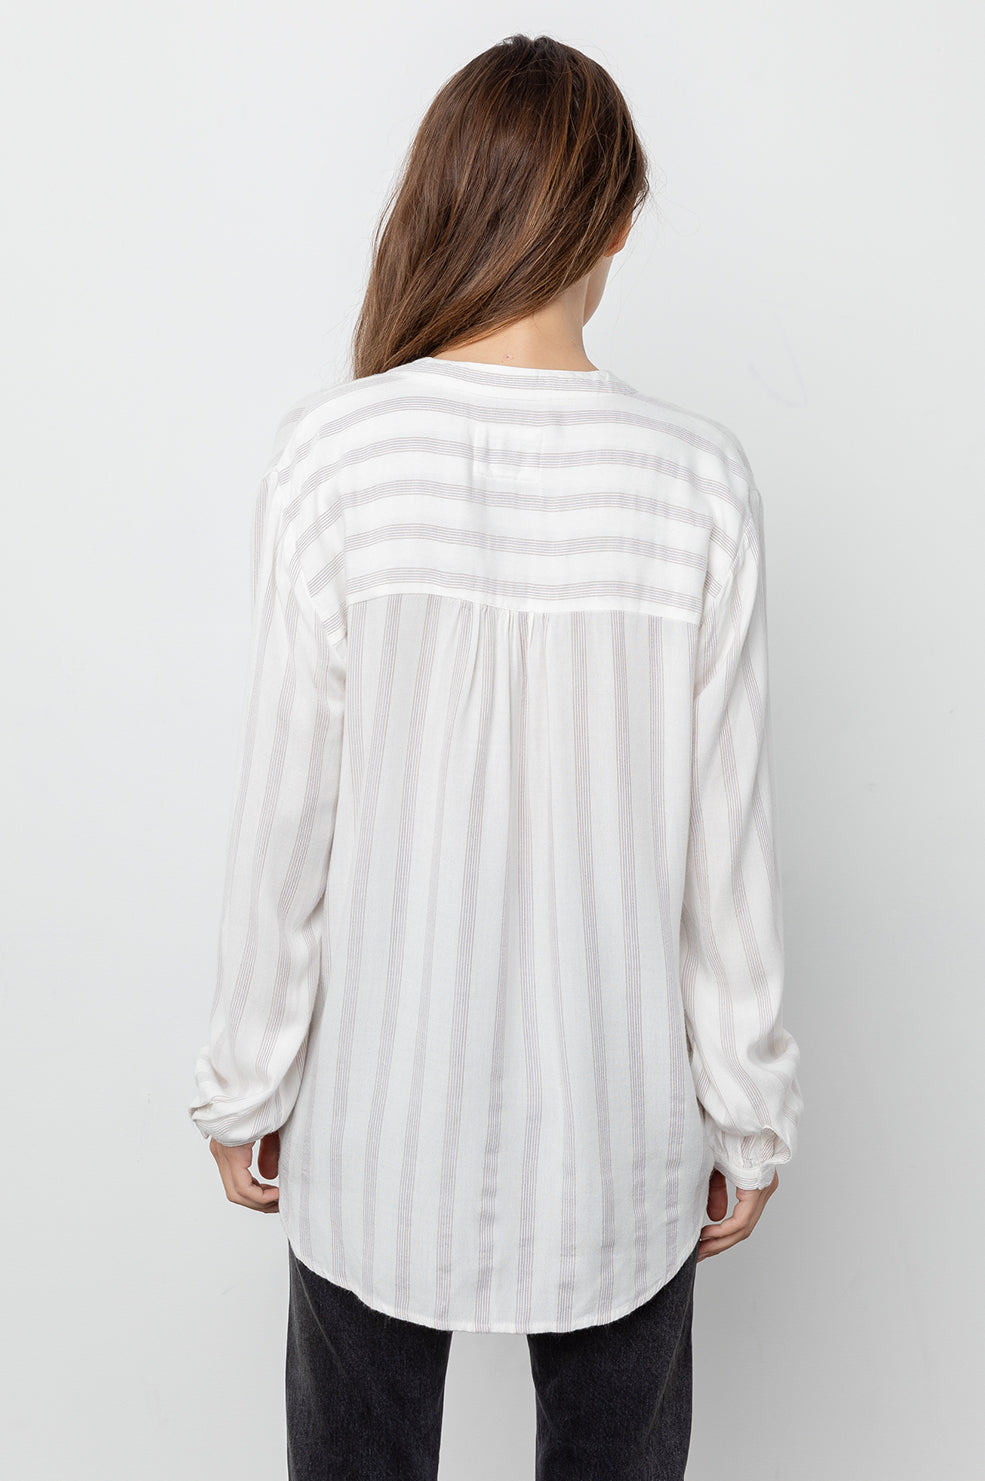 ELOISE - CARRARA STRIPE